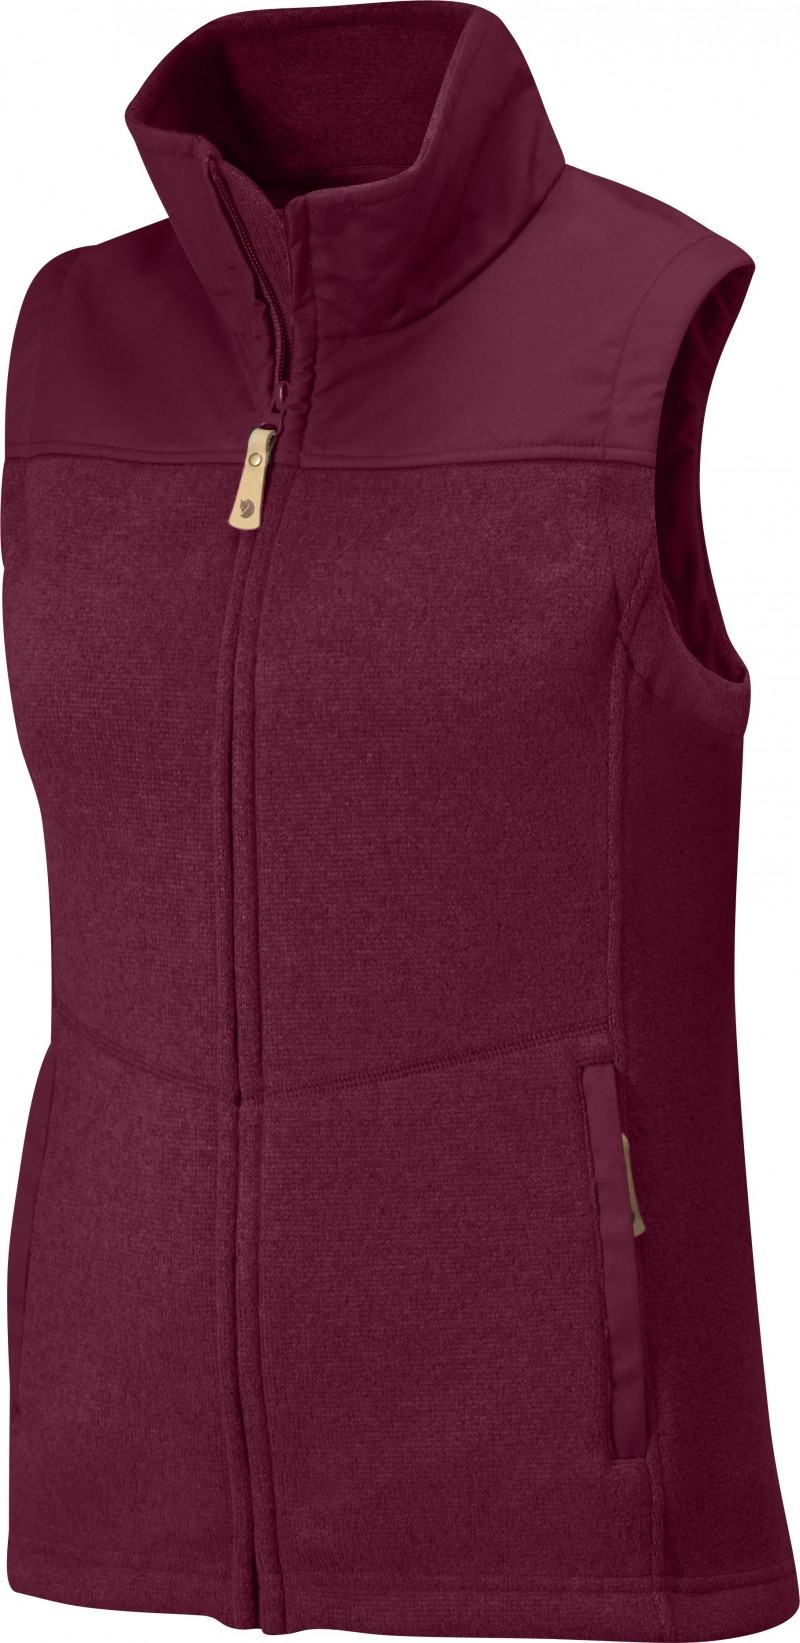 FjallRaven Lule Fleece Vest Ox Red-30